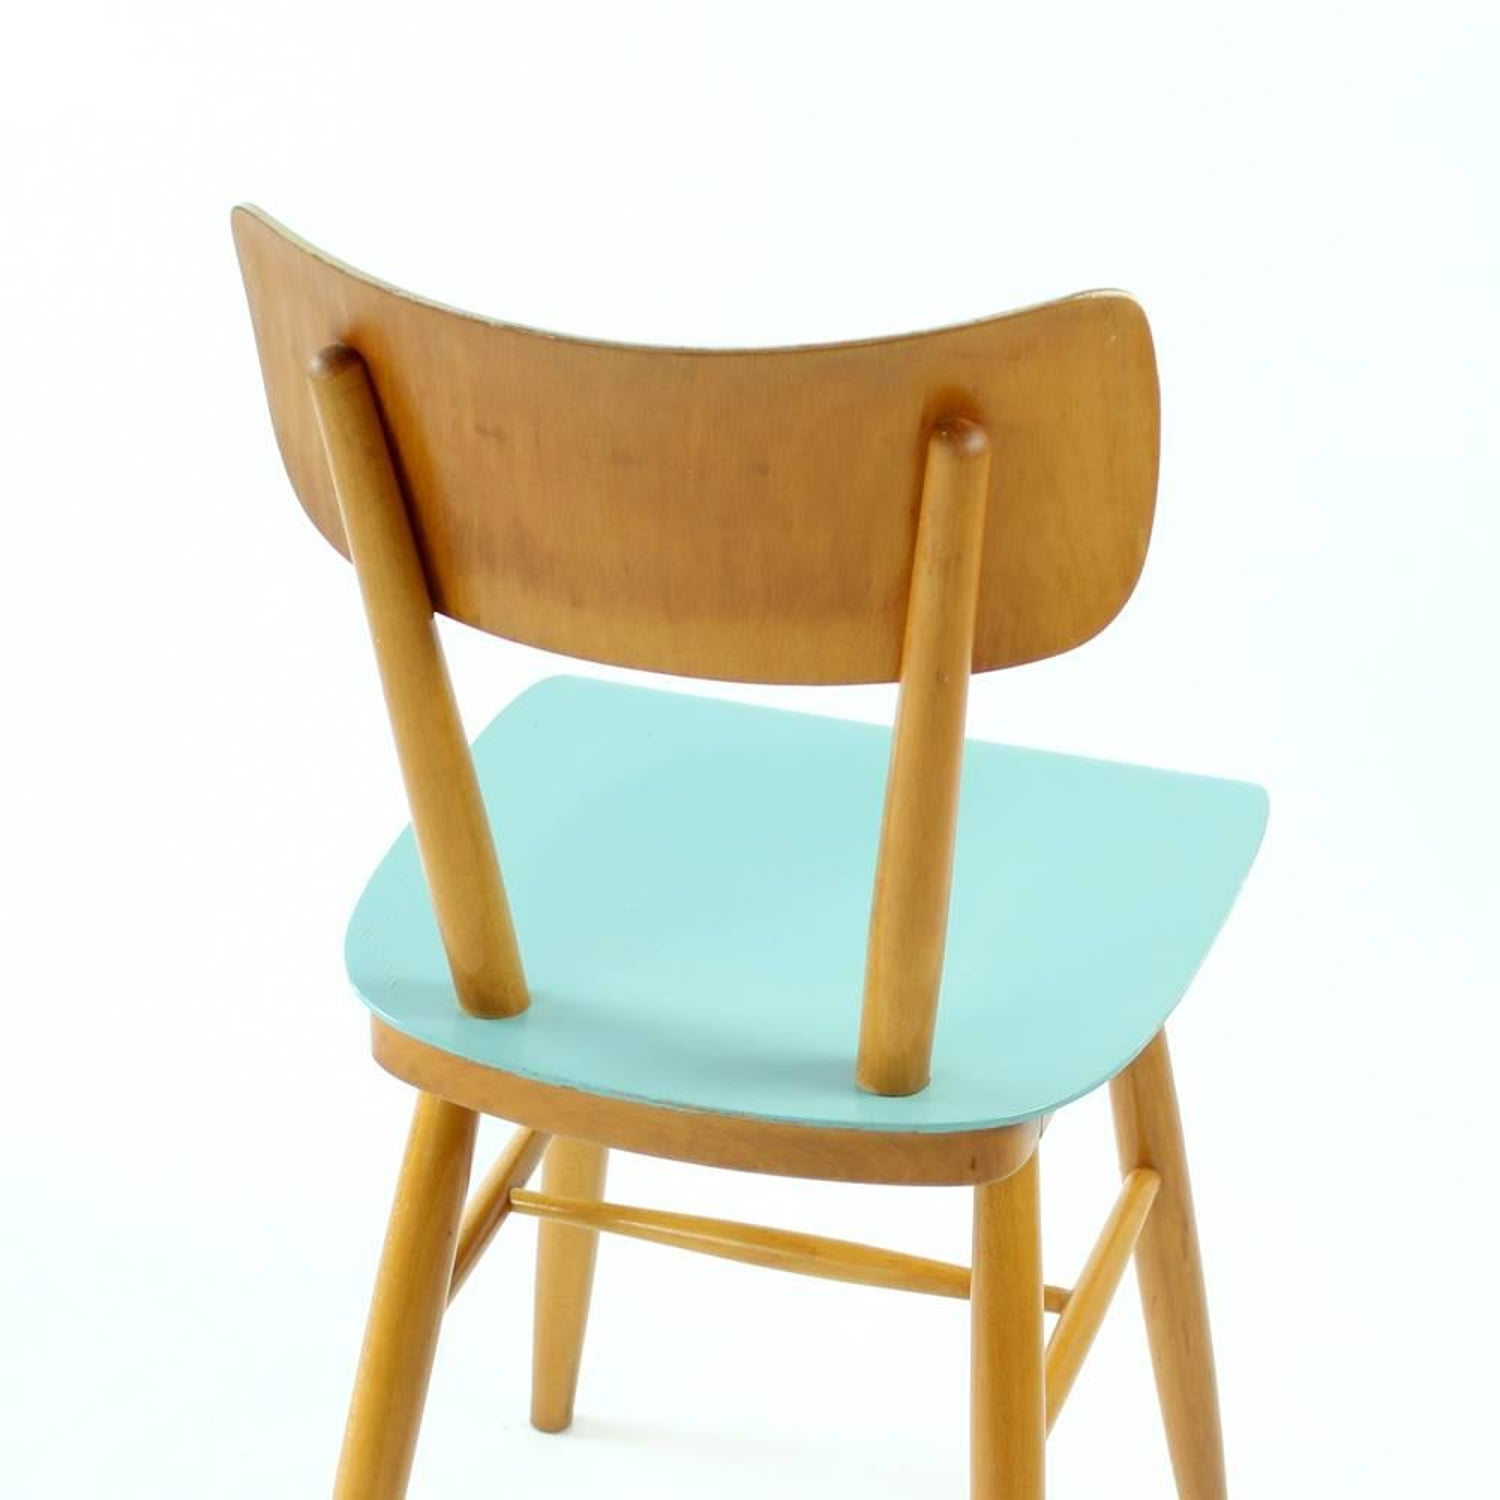 Midcentury Wooden Chairs in Blue and Cream Color by TON ...